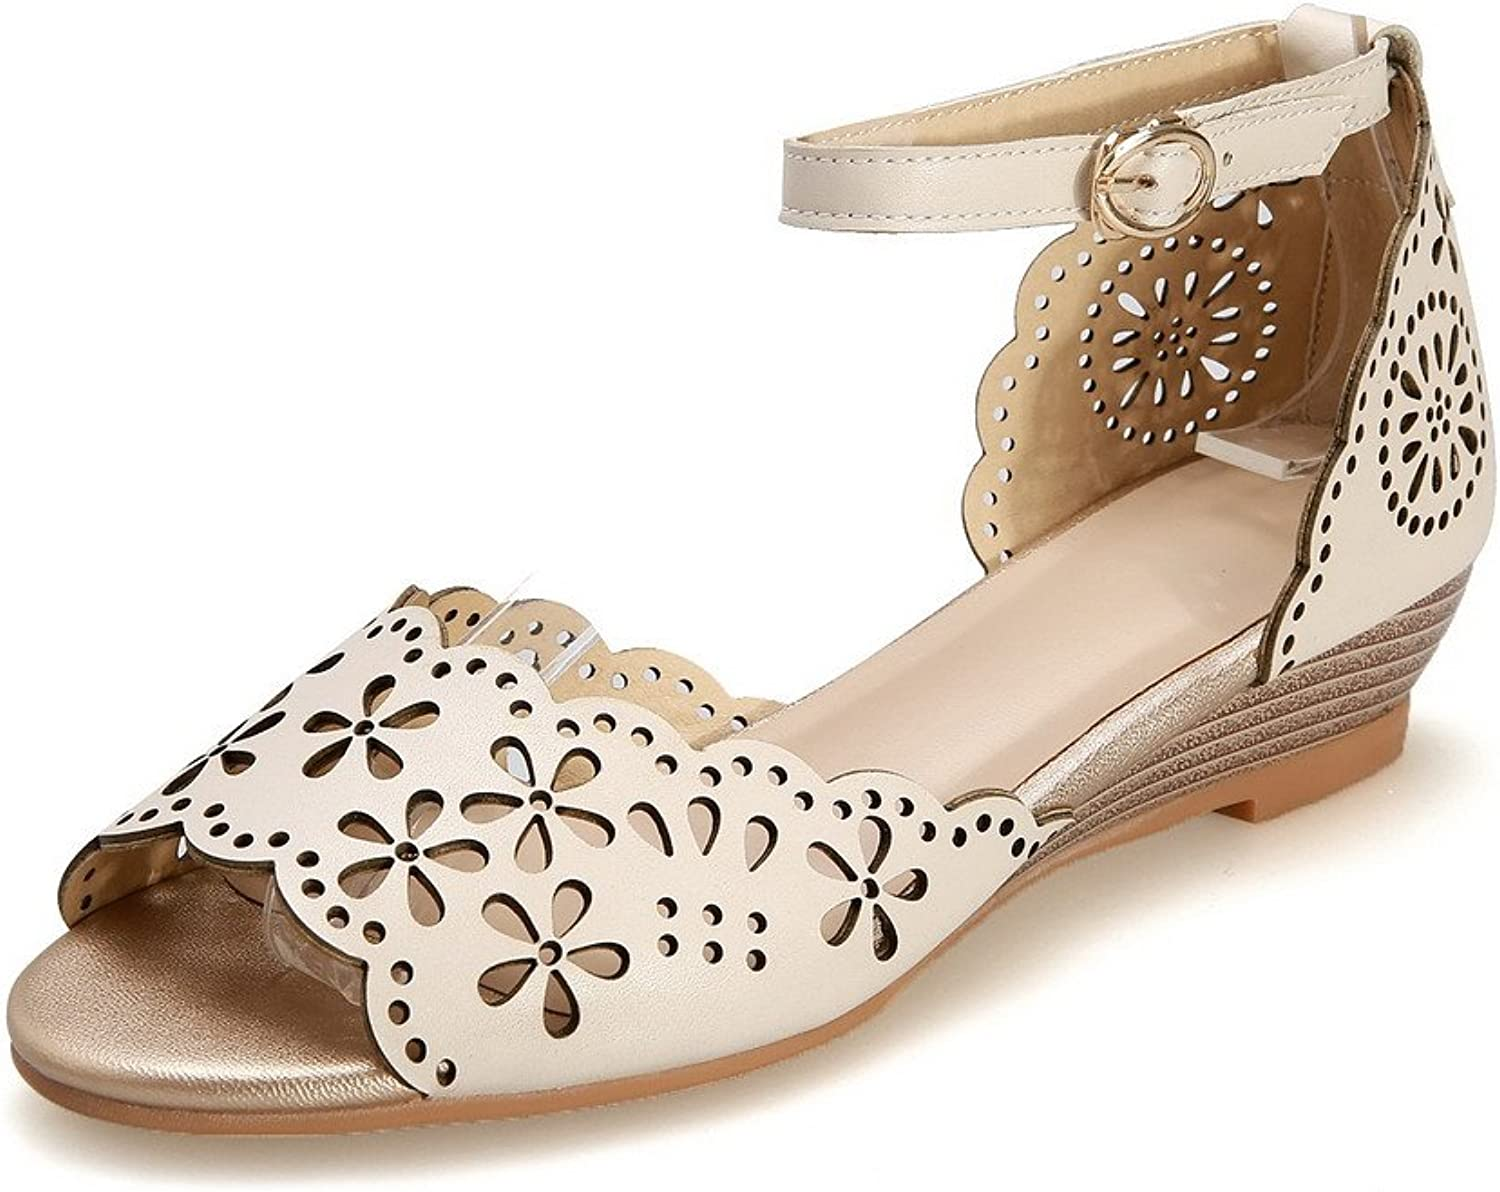 AllhqFashion Women's Buckle Open Toe Low Heels Cow Leather Solid Sandals